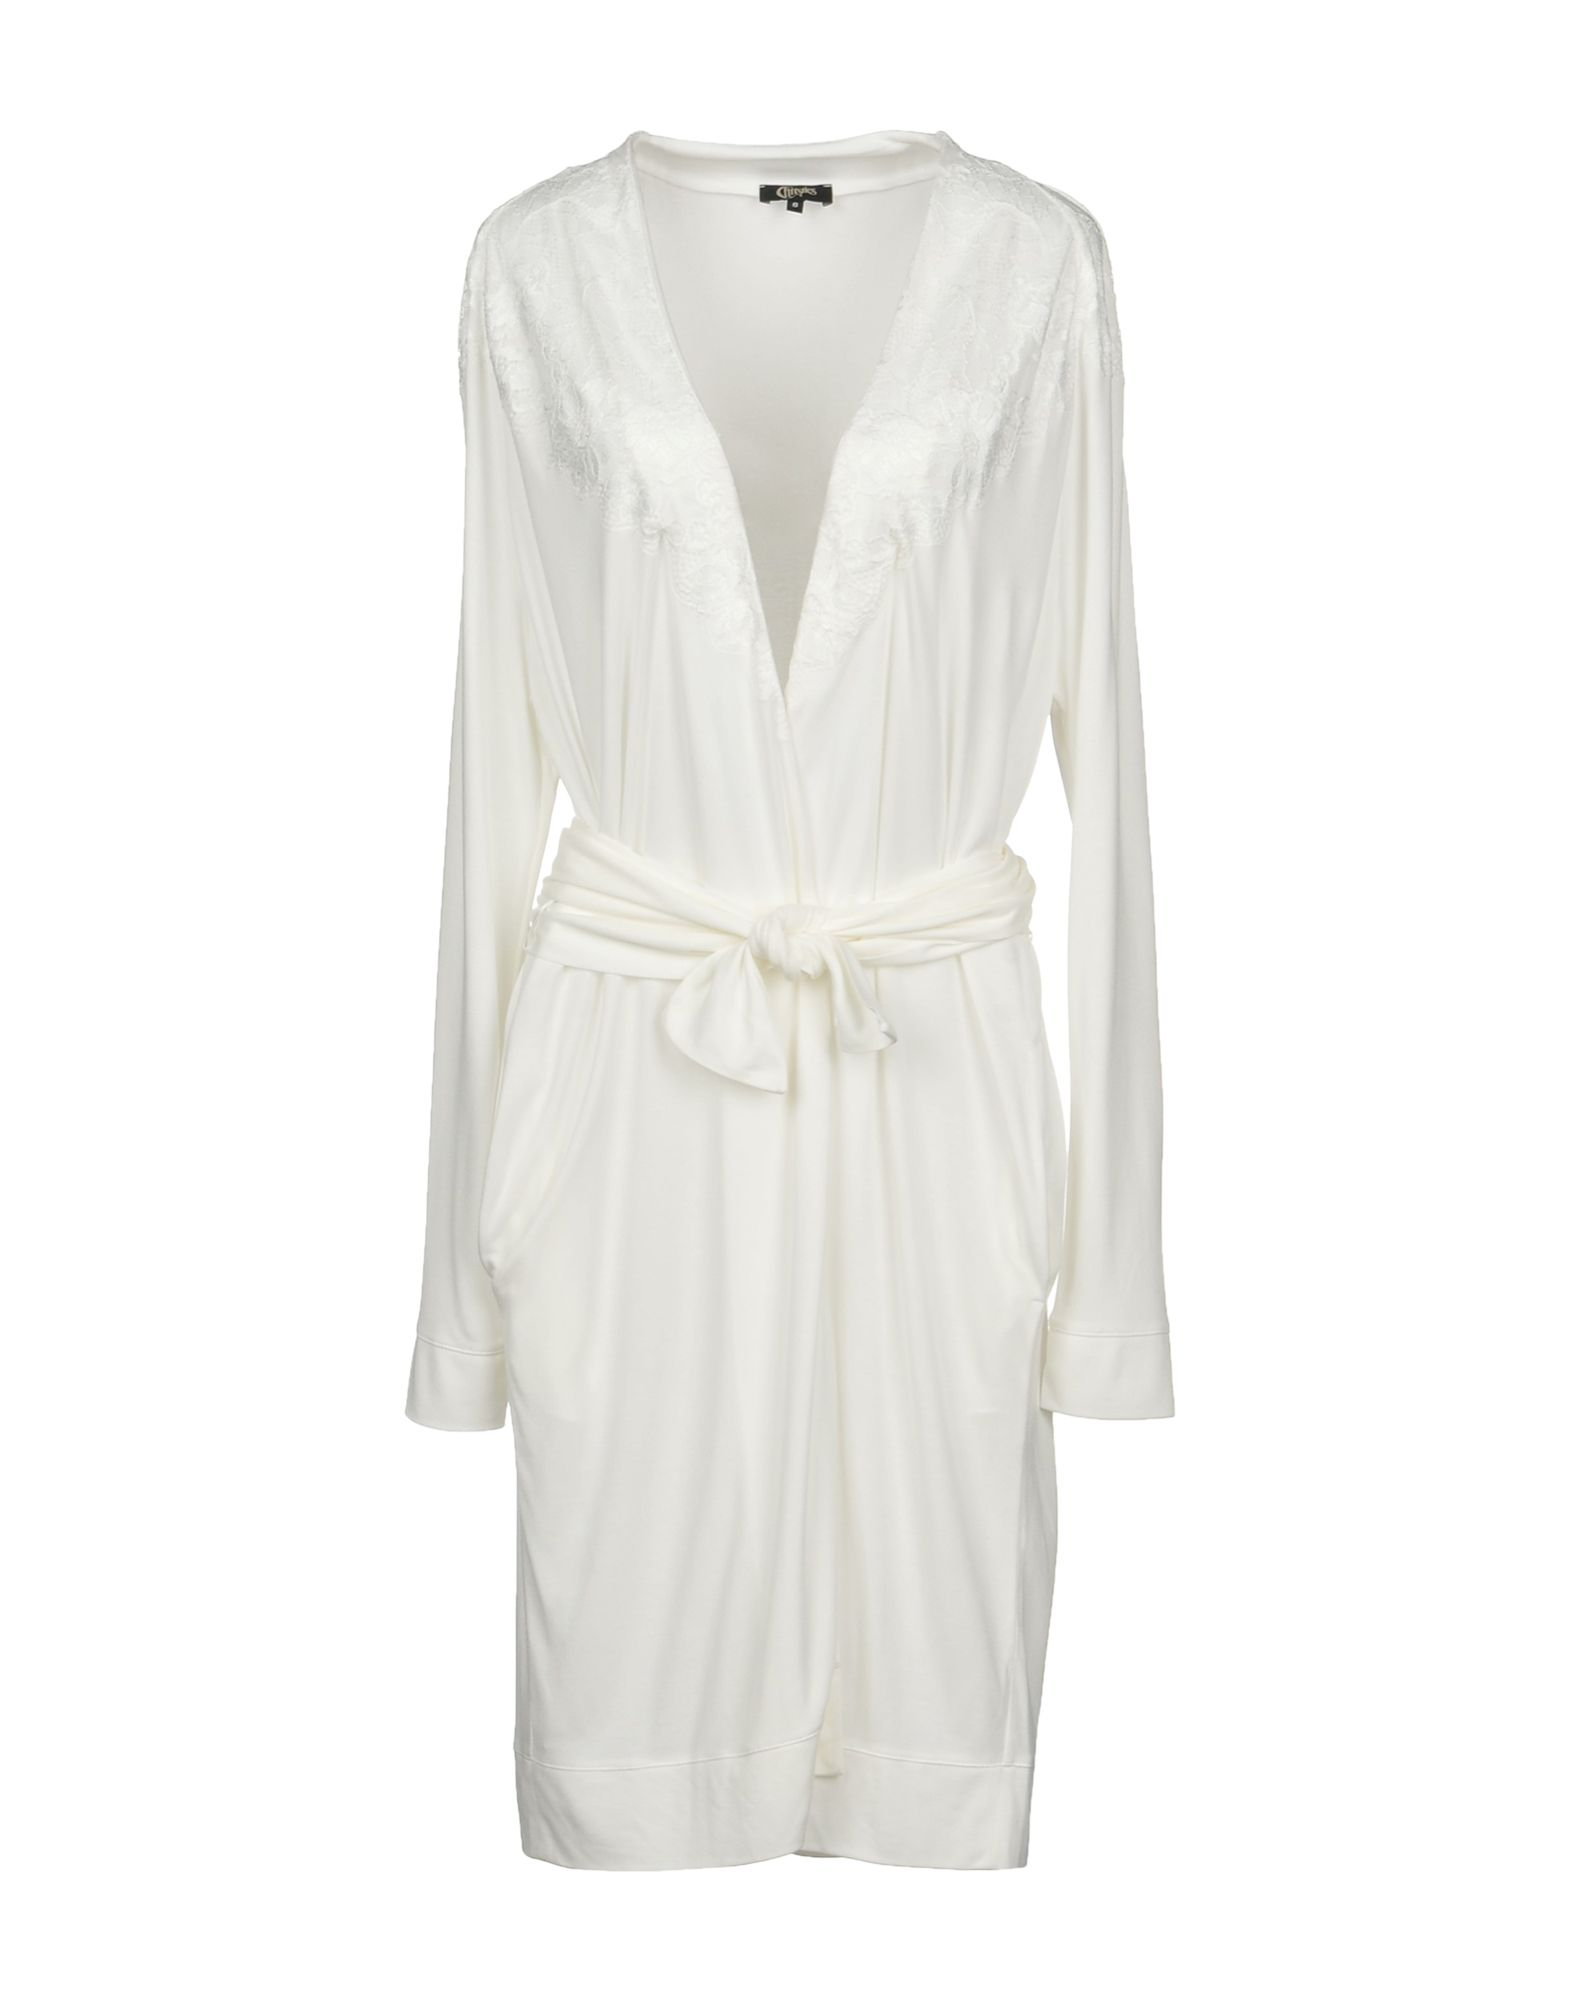 CHRISTIES Robes in White